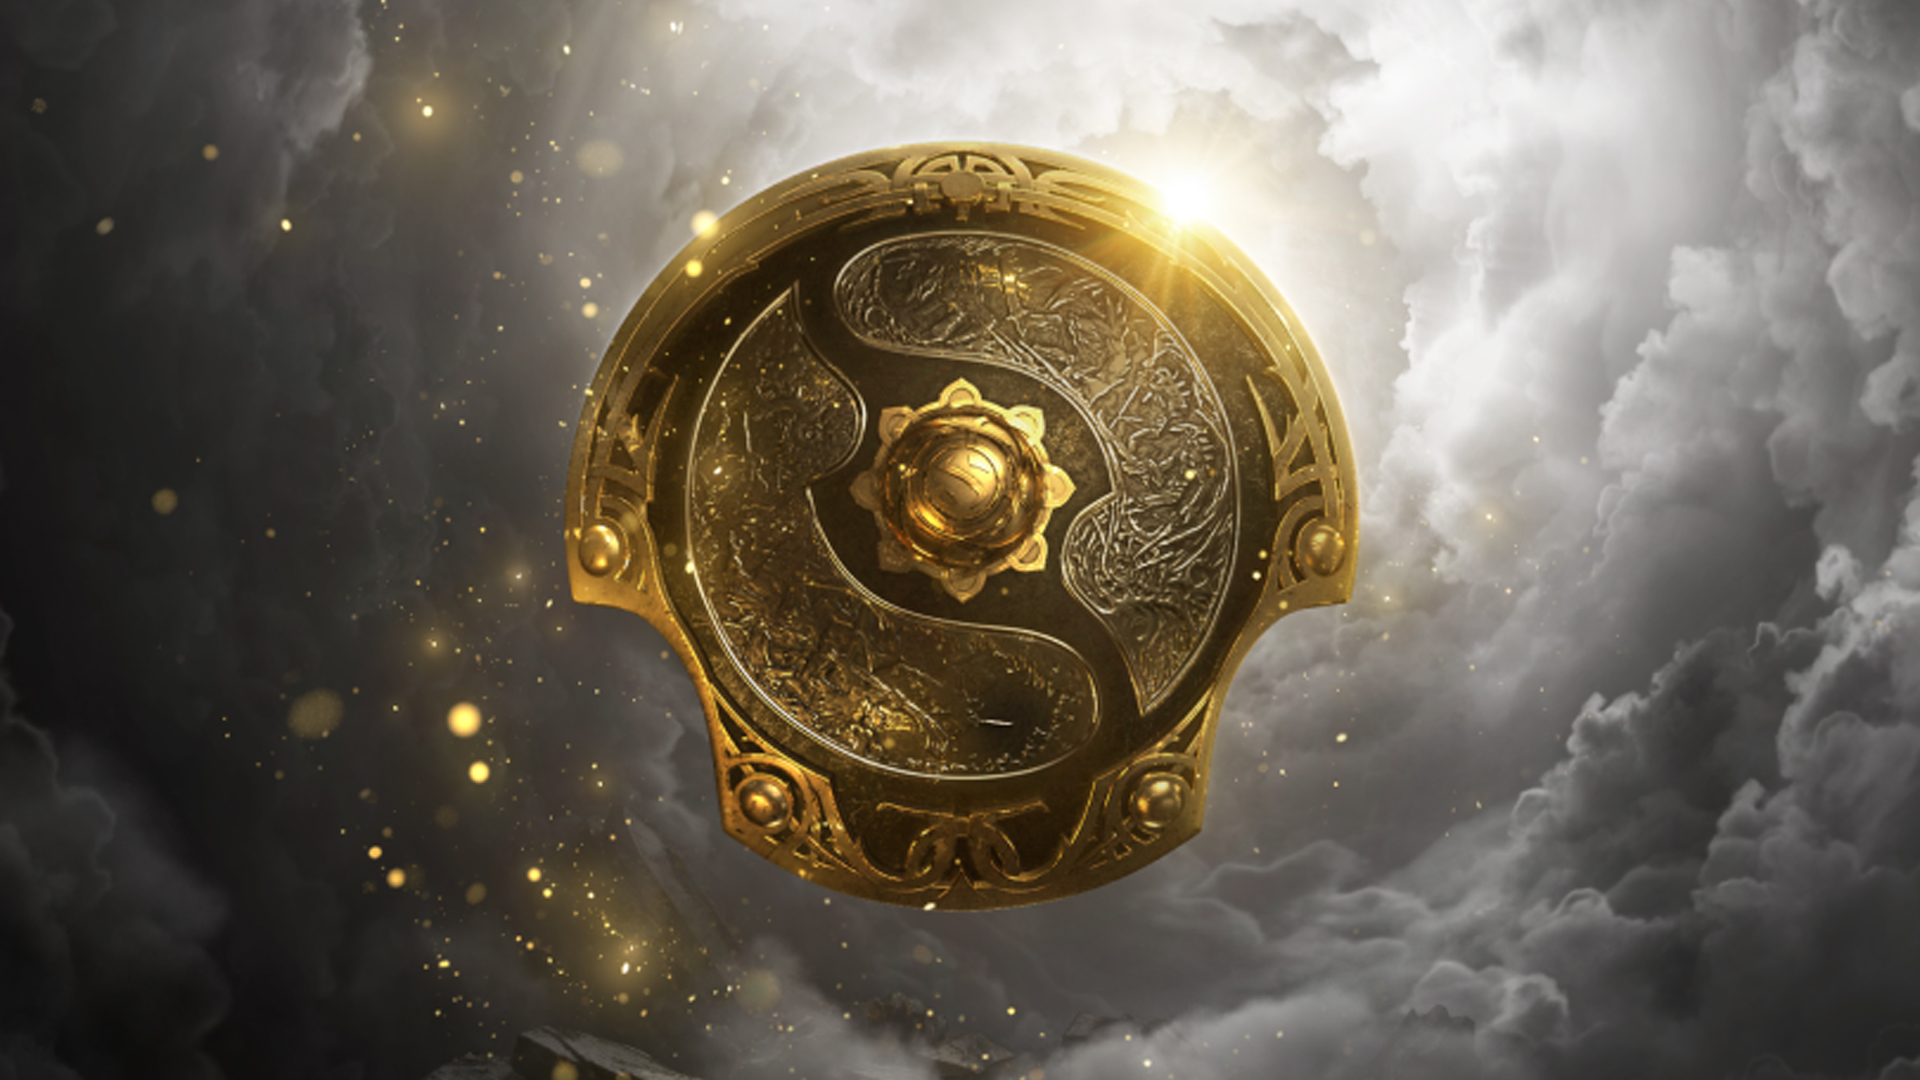 Dota 2's International is refunding tickets and won't have a live audience